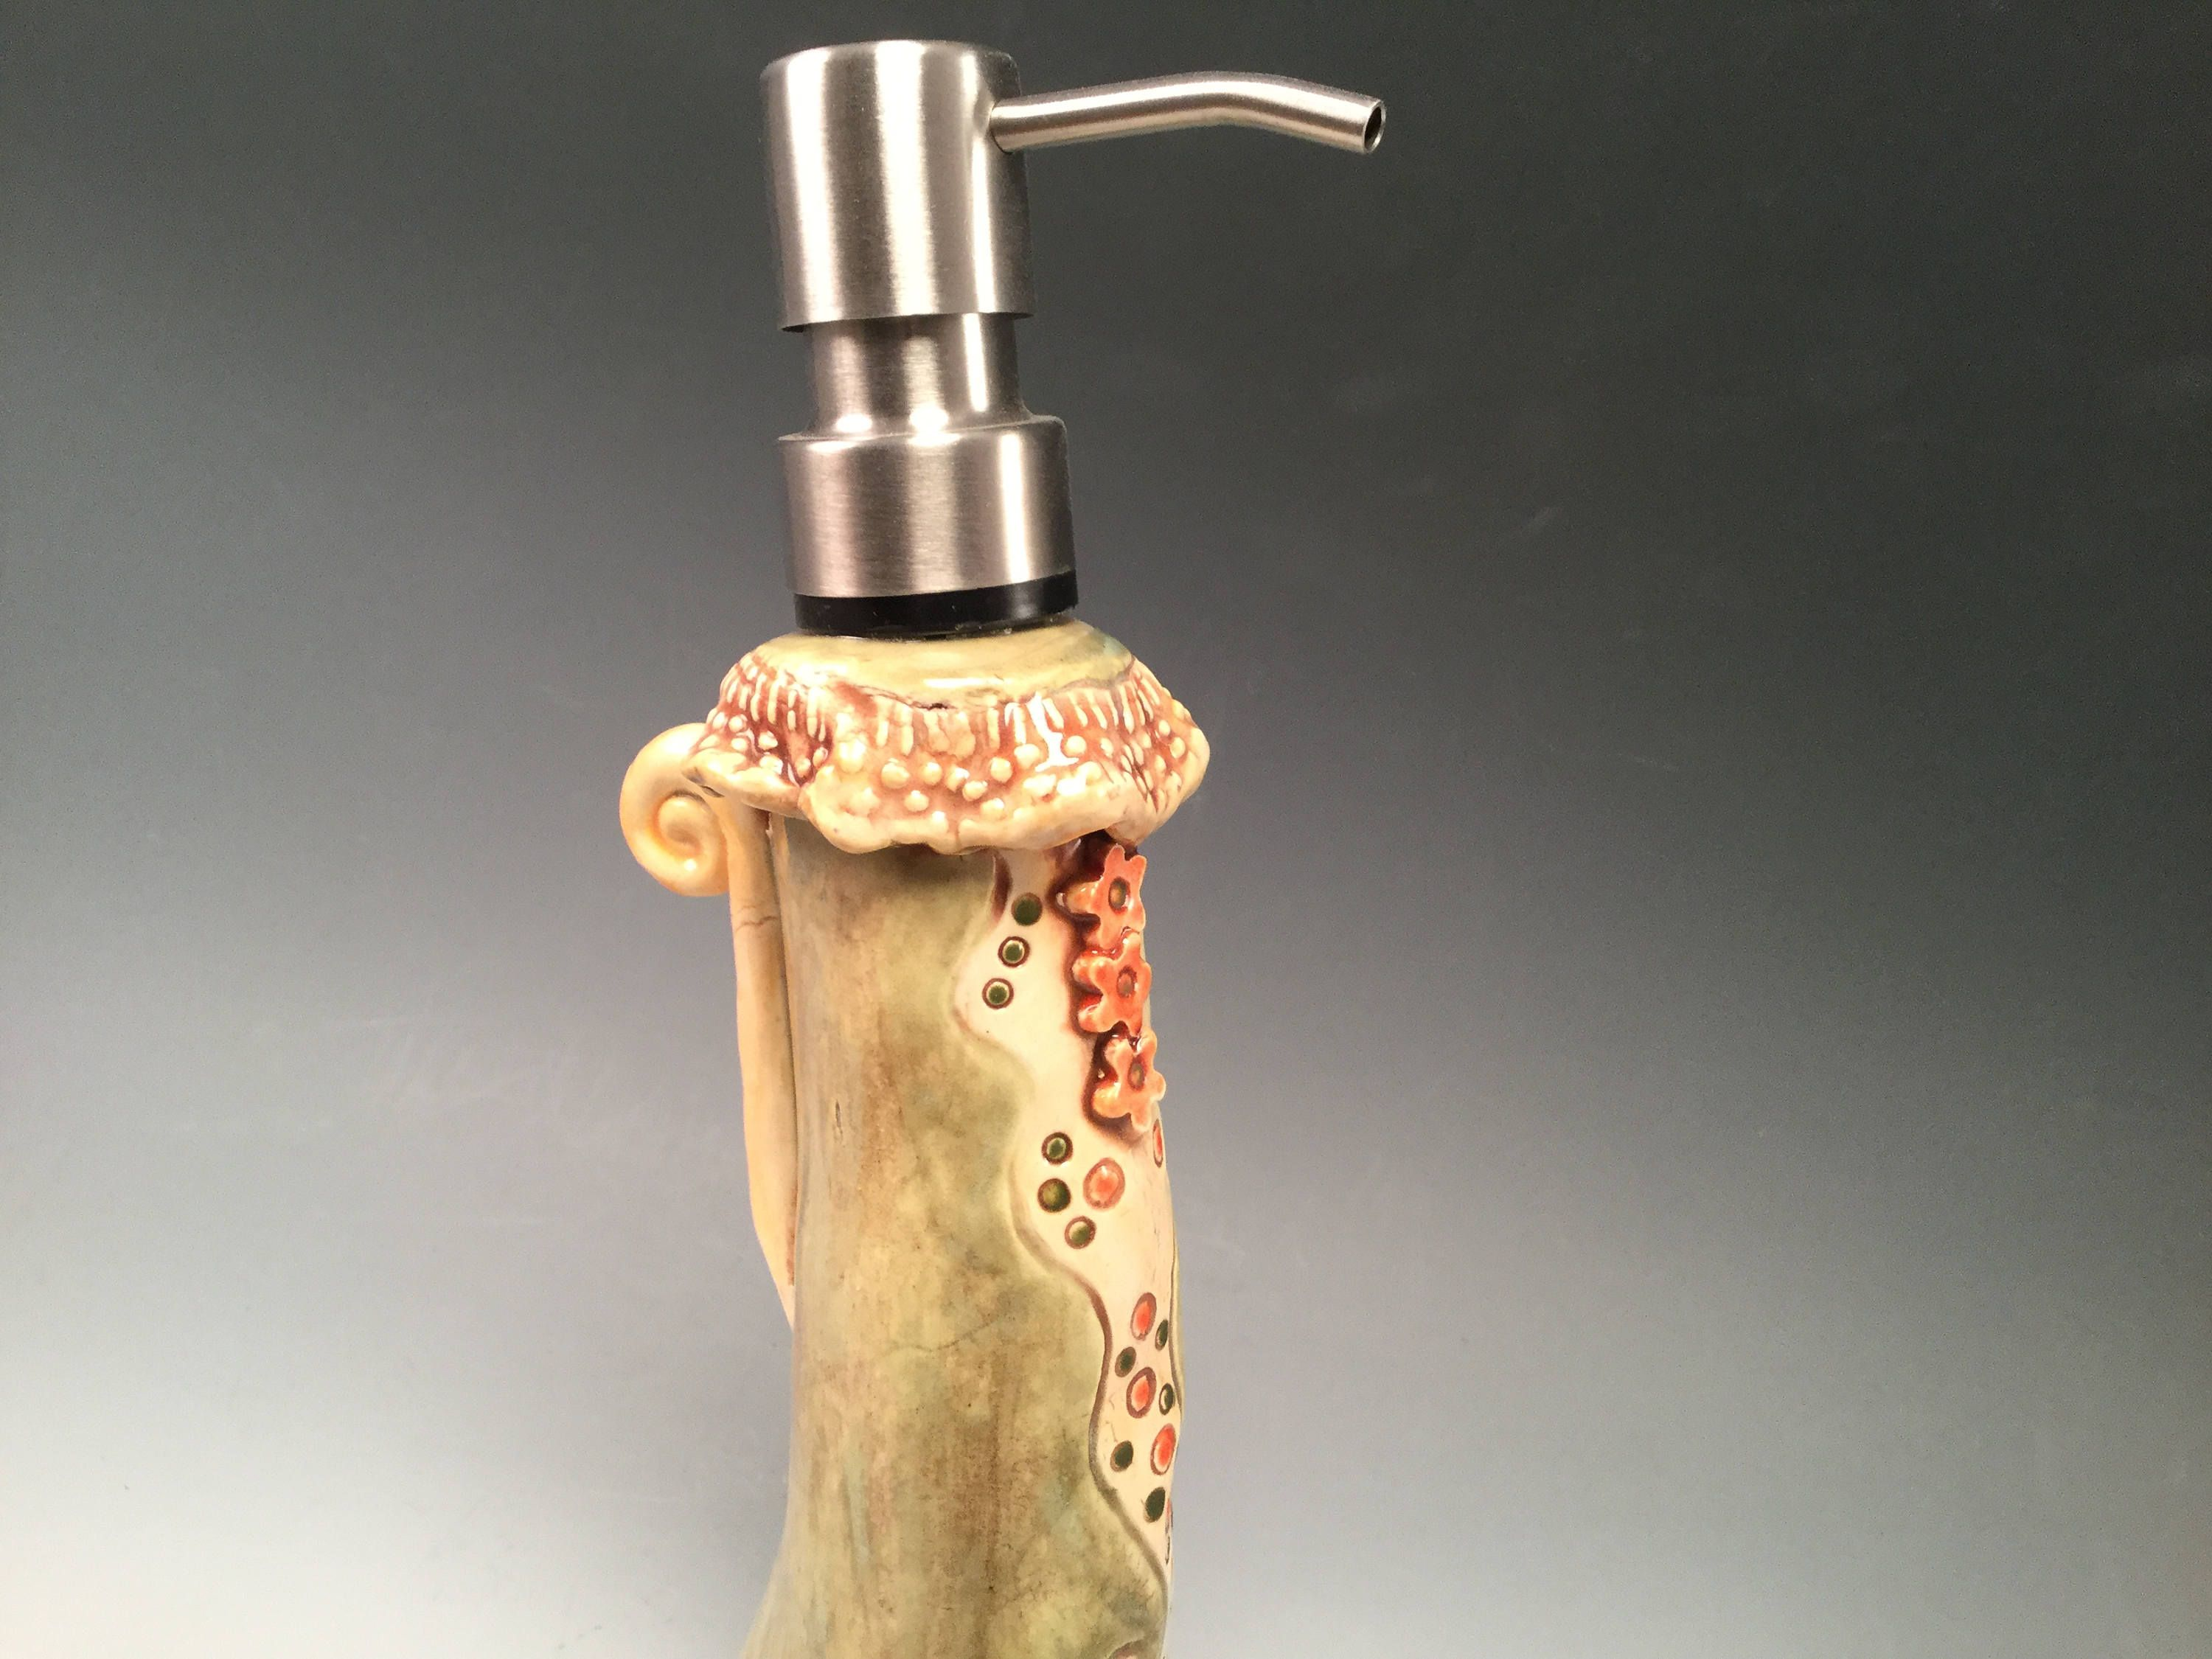 Soap Dispenser Soap Pump Bathroom Accessories Pottery Soap Pump Soap Dish Soap Bottle Kitchen Soap Pump By Joycepottery Kitchen Soap Soap Pump Soap Dispenser